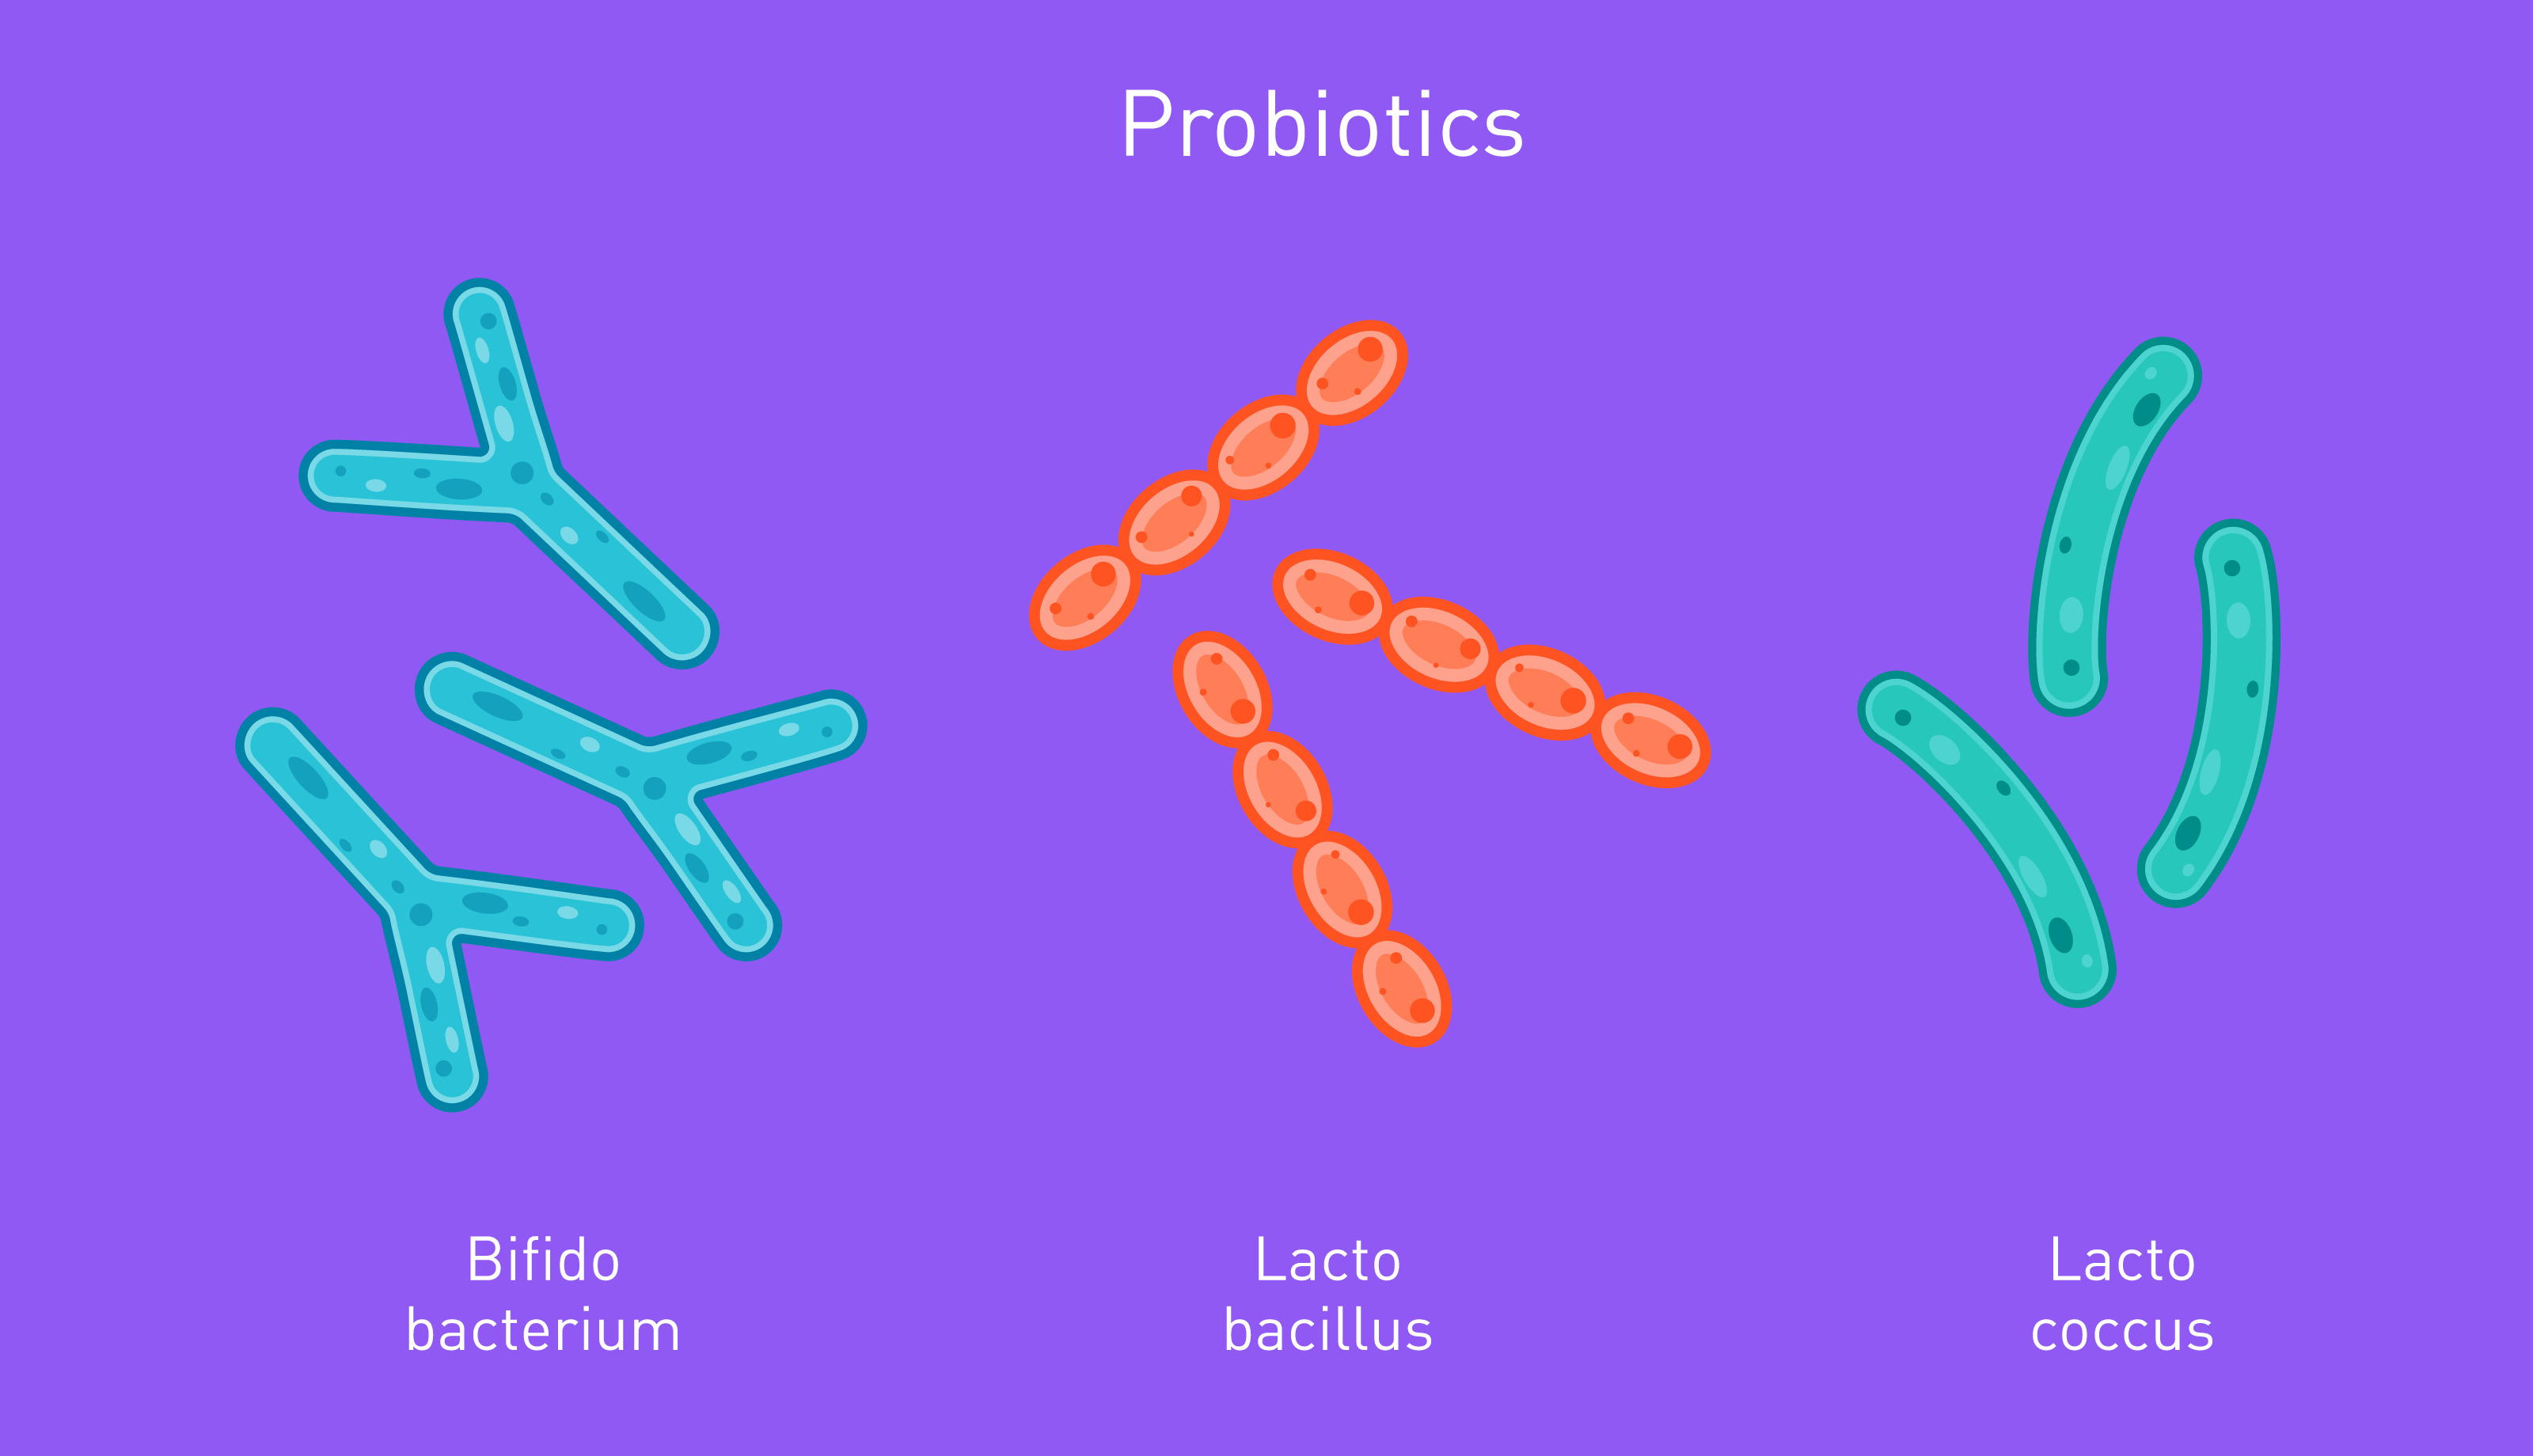 CFU calculates the quantity of bacteria in a probiotic supplement by Atlas Biomed